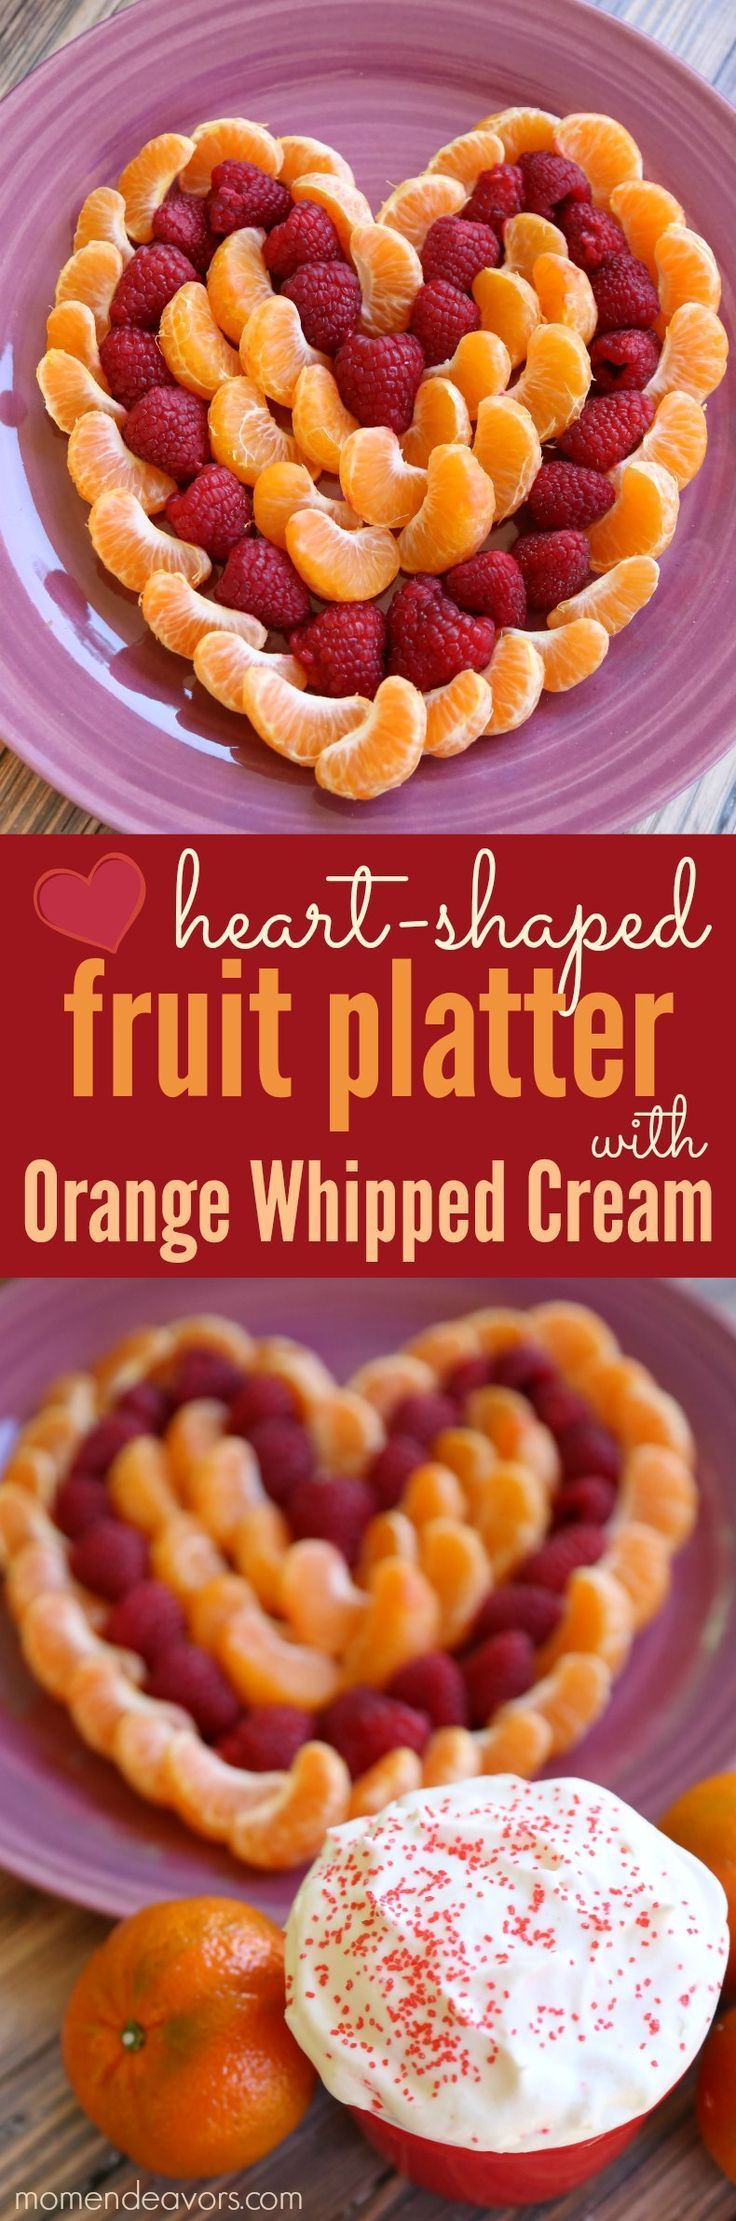 Cuties heart-shaped fruit platter with homemade orange whipped cream fruit dip! Perfect for Valentine's Day!